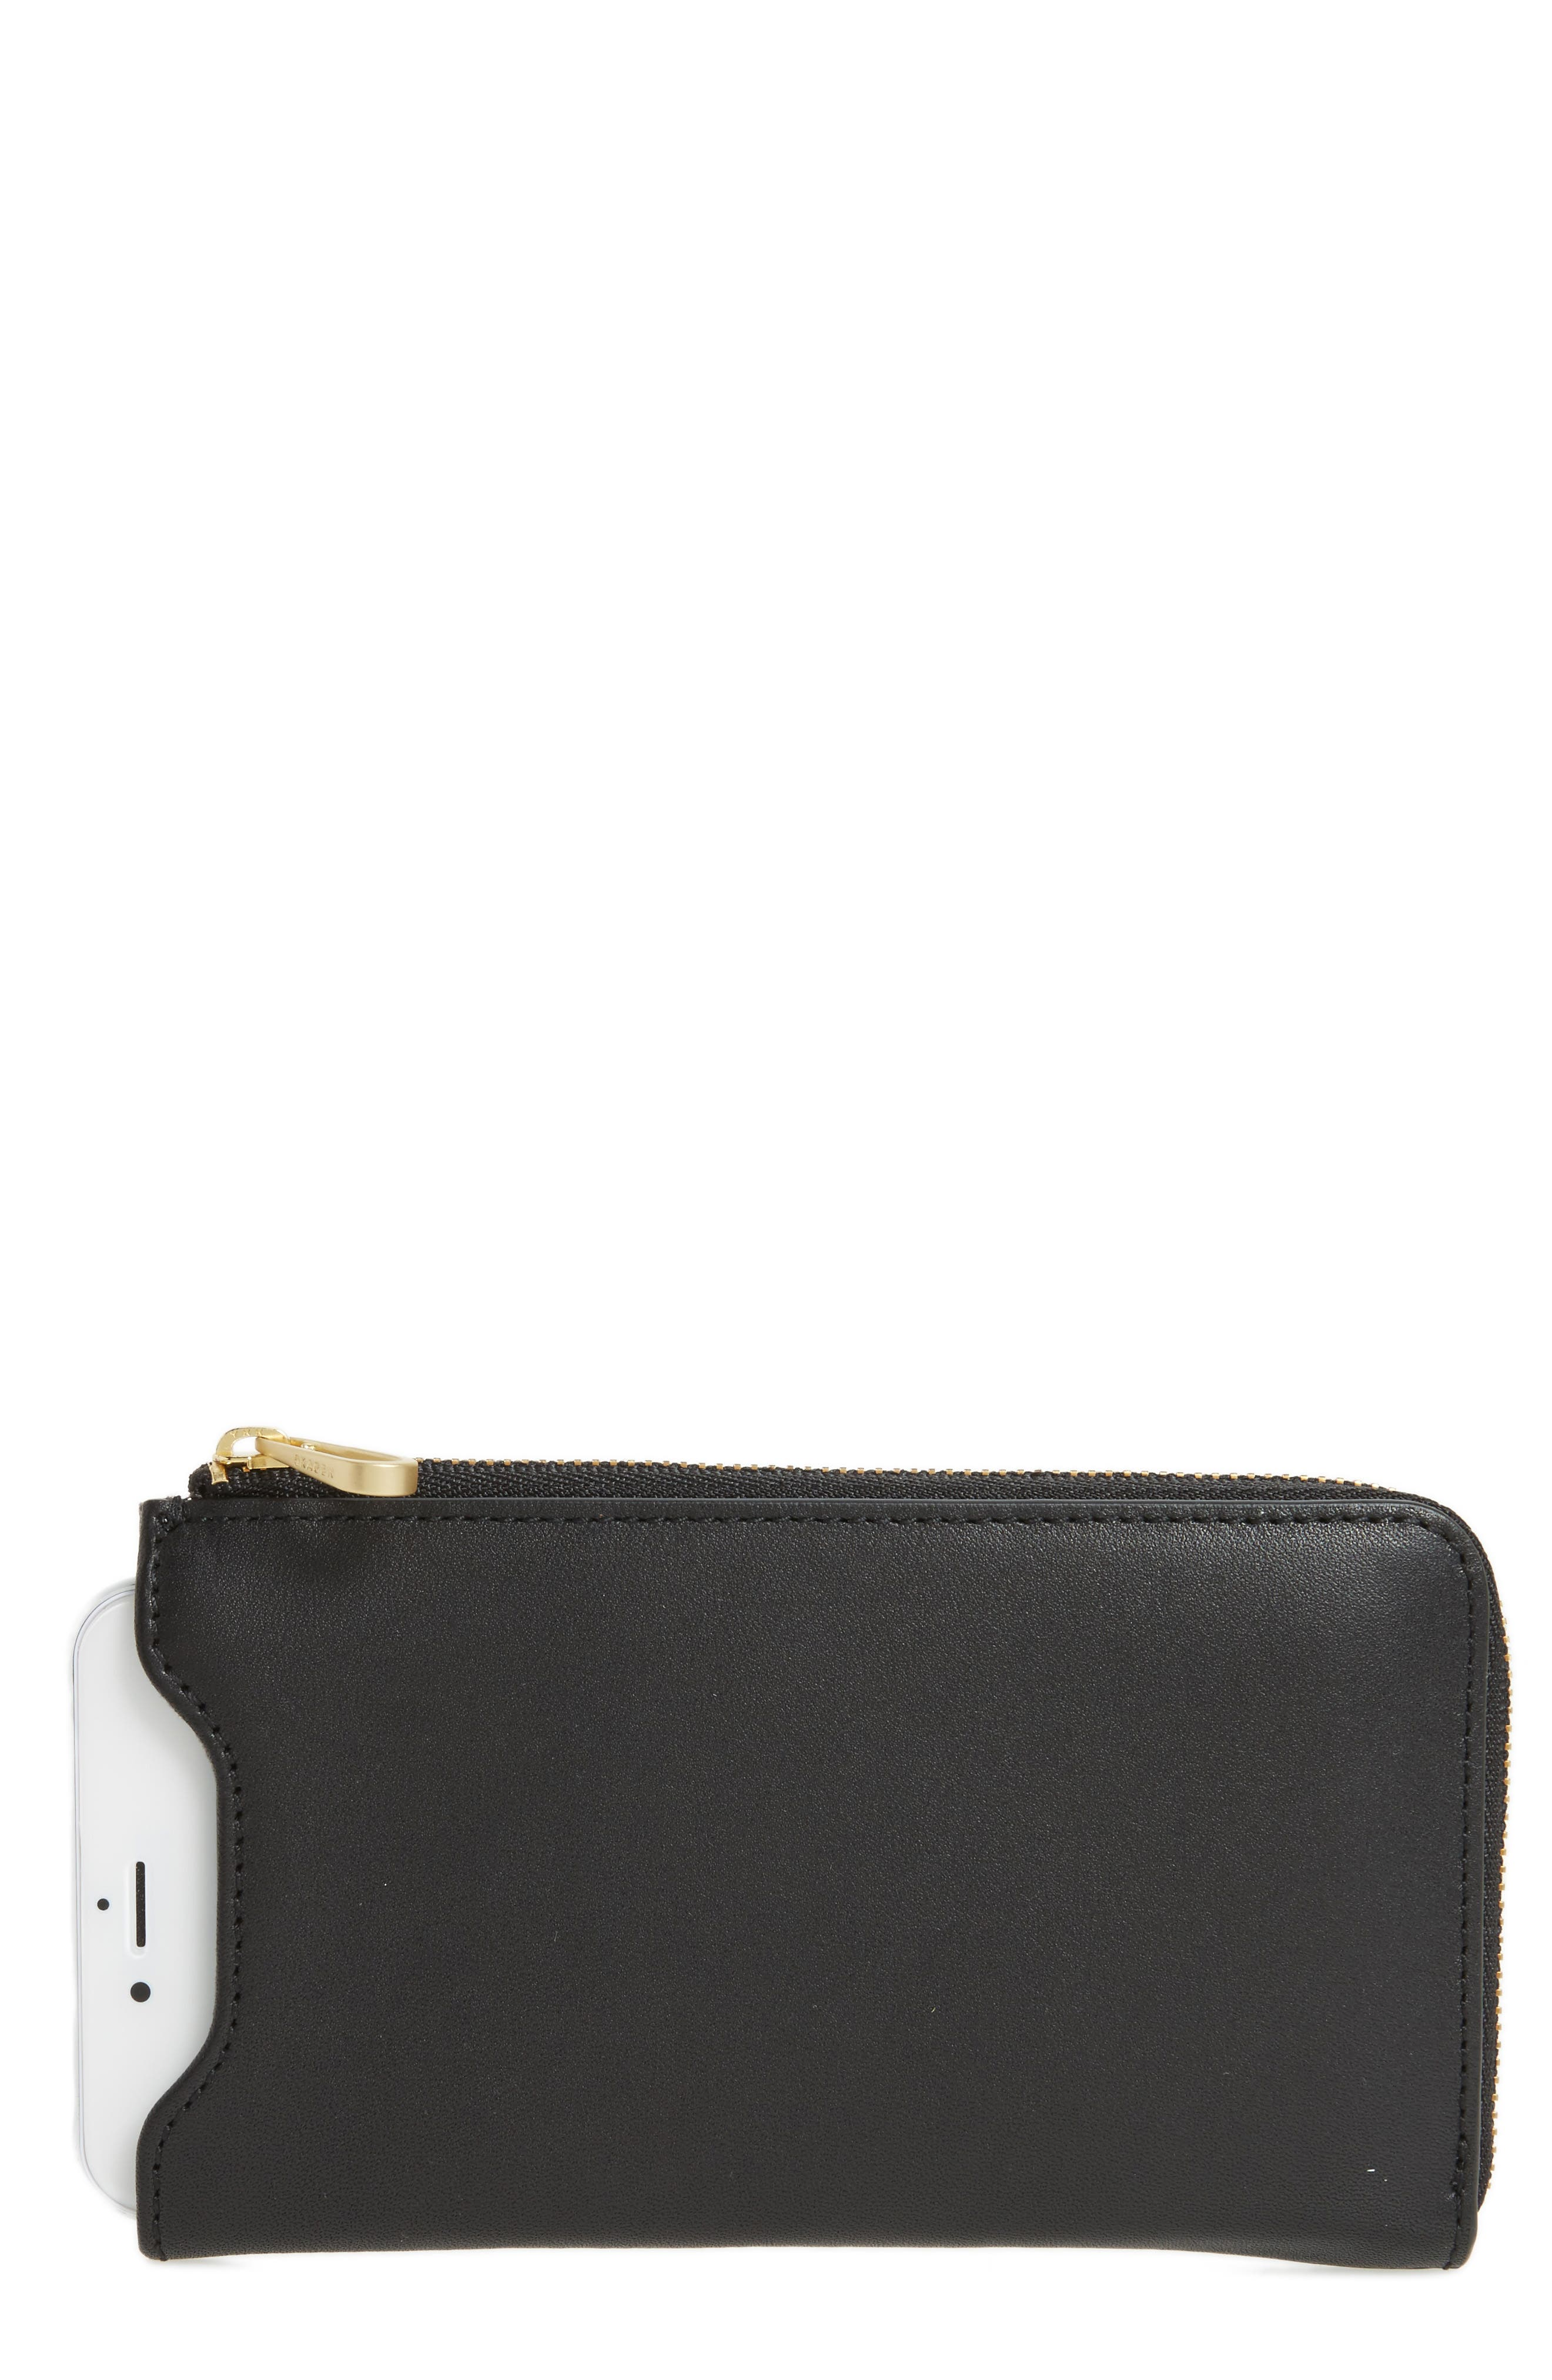 Lilli iPhone 6/6s/7 Leather Sleeve,                         Main,                         color, Black